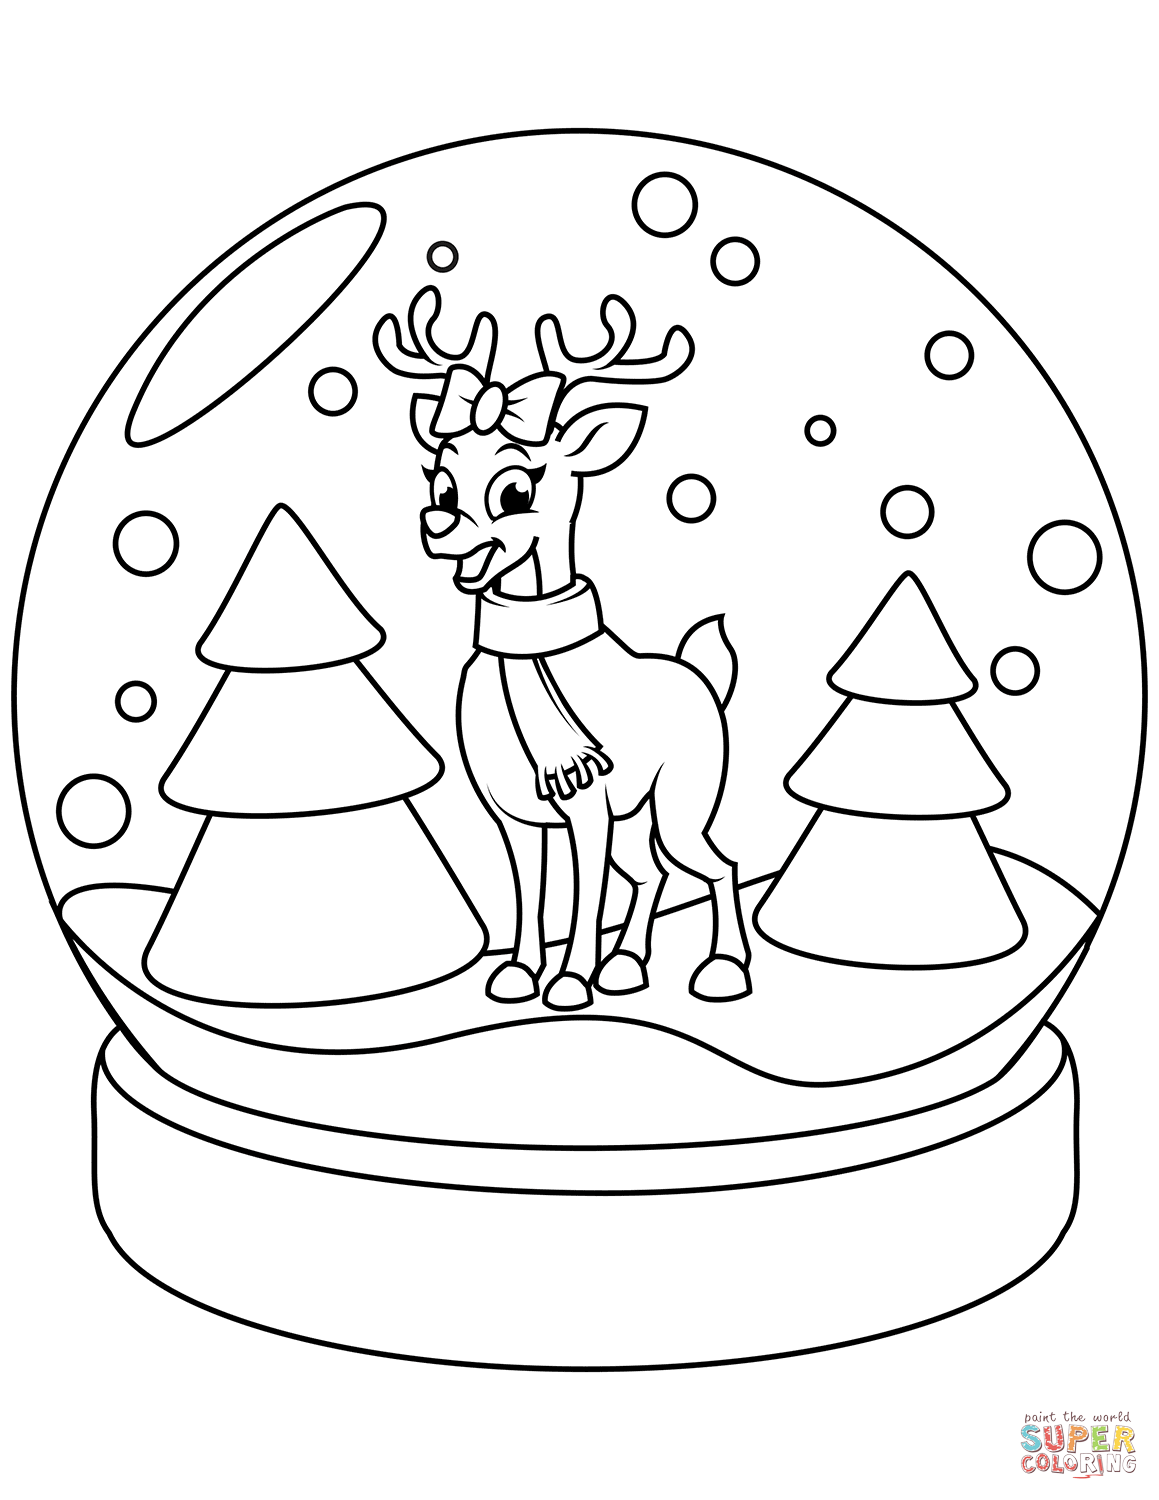 Christmas Snow Globe with Reindeer coloring page | Free Printable Coloring  Pages